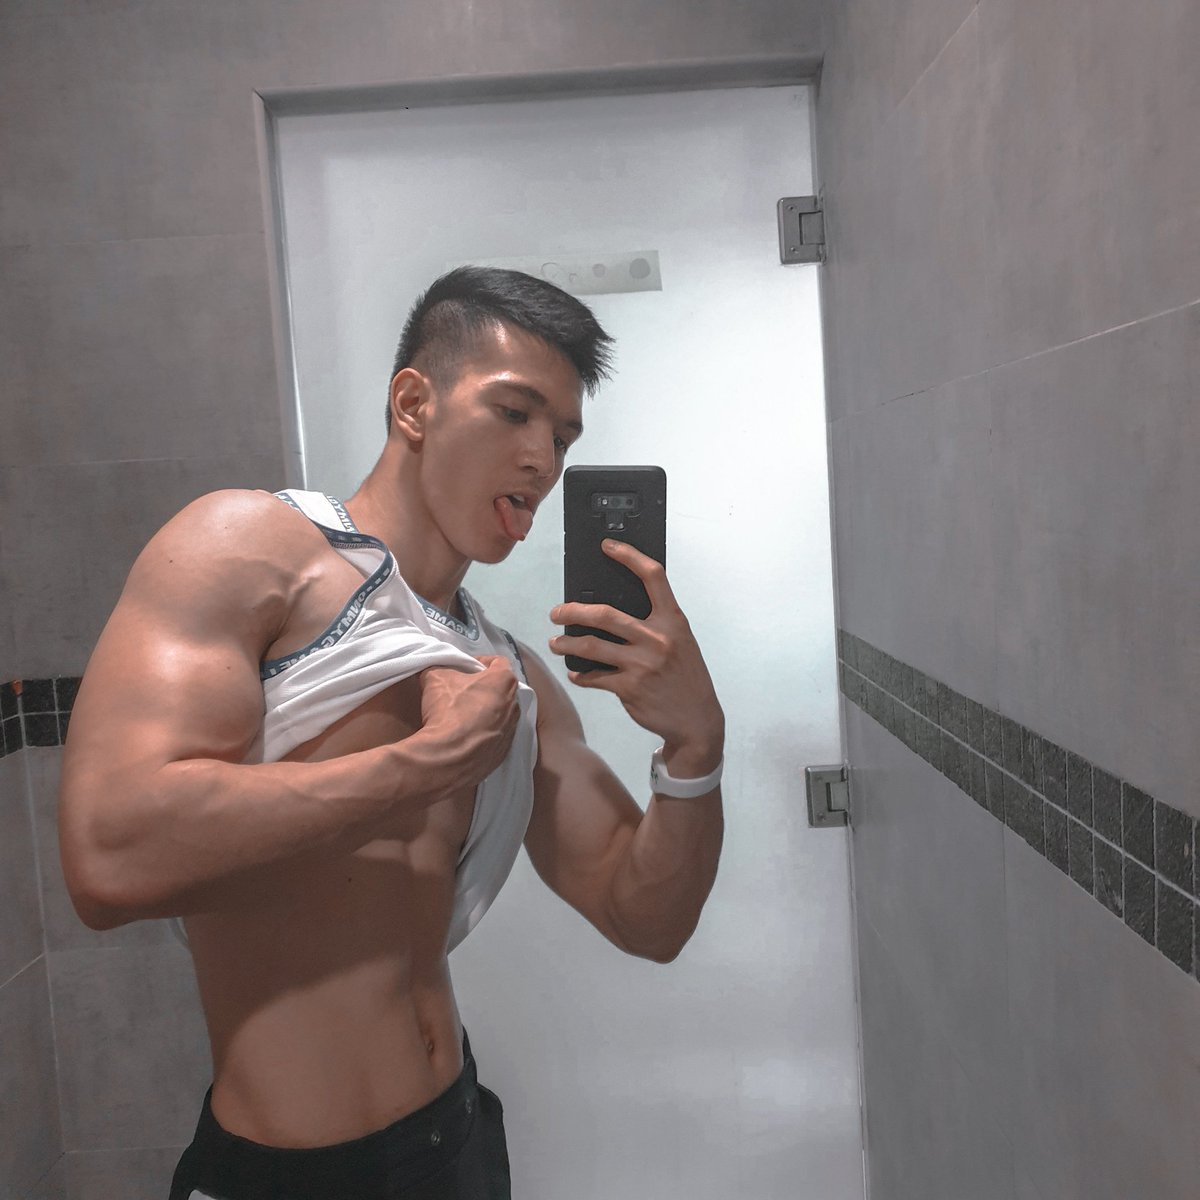 WEEKEND FEELS VEINS  Tops From|@omg_sportswear•Check Thier Instagram Account For More Sportswear   #omg #omgsportswear #malaysia #malaysian #sportwear #sportwearshop #gymmotivation #gymmemes #gymlife #gymclothes #dubailife #dubailife #dubaiigers #selfie #mirrorselfie<br>http://pic.twitter.com/jx9brNkAab